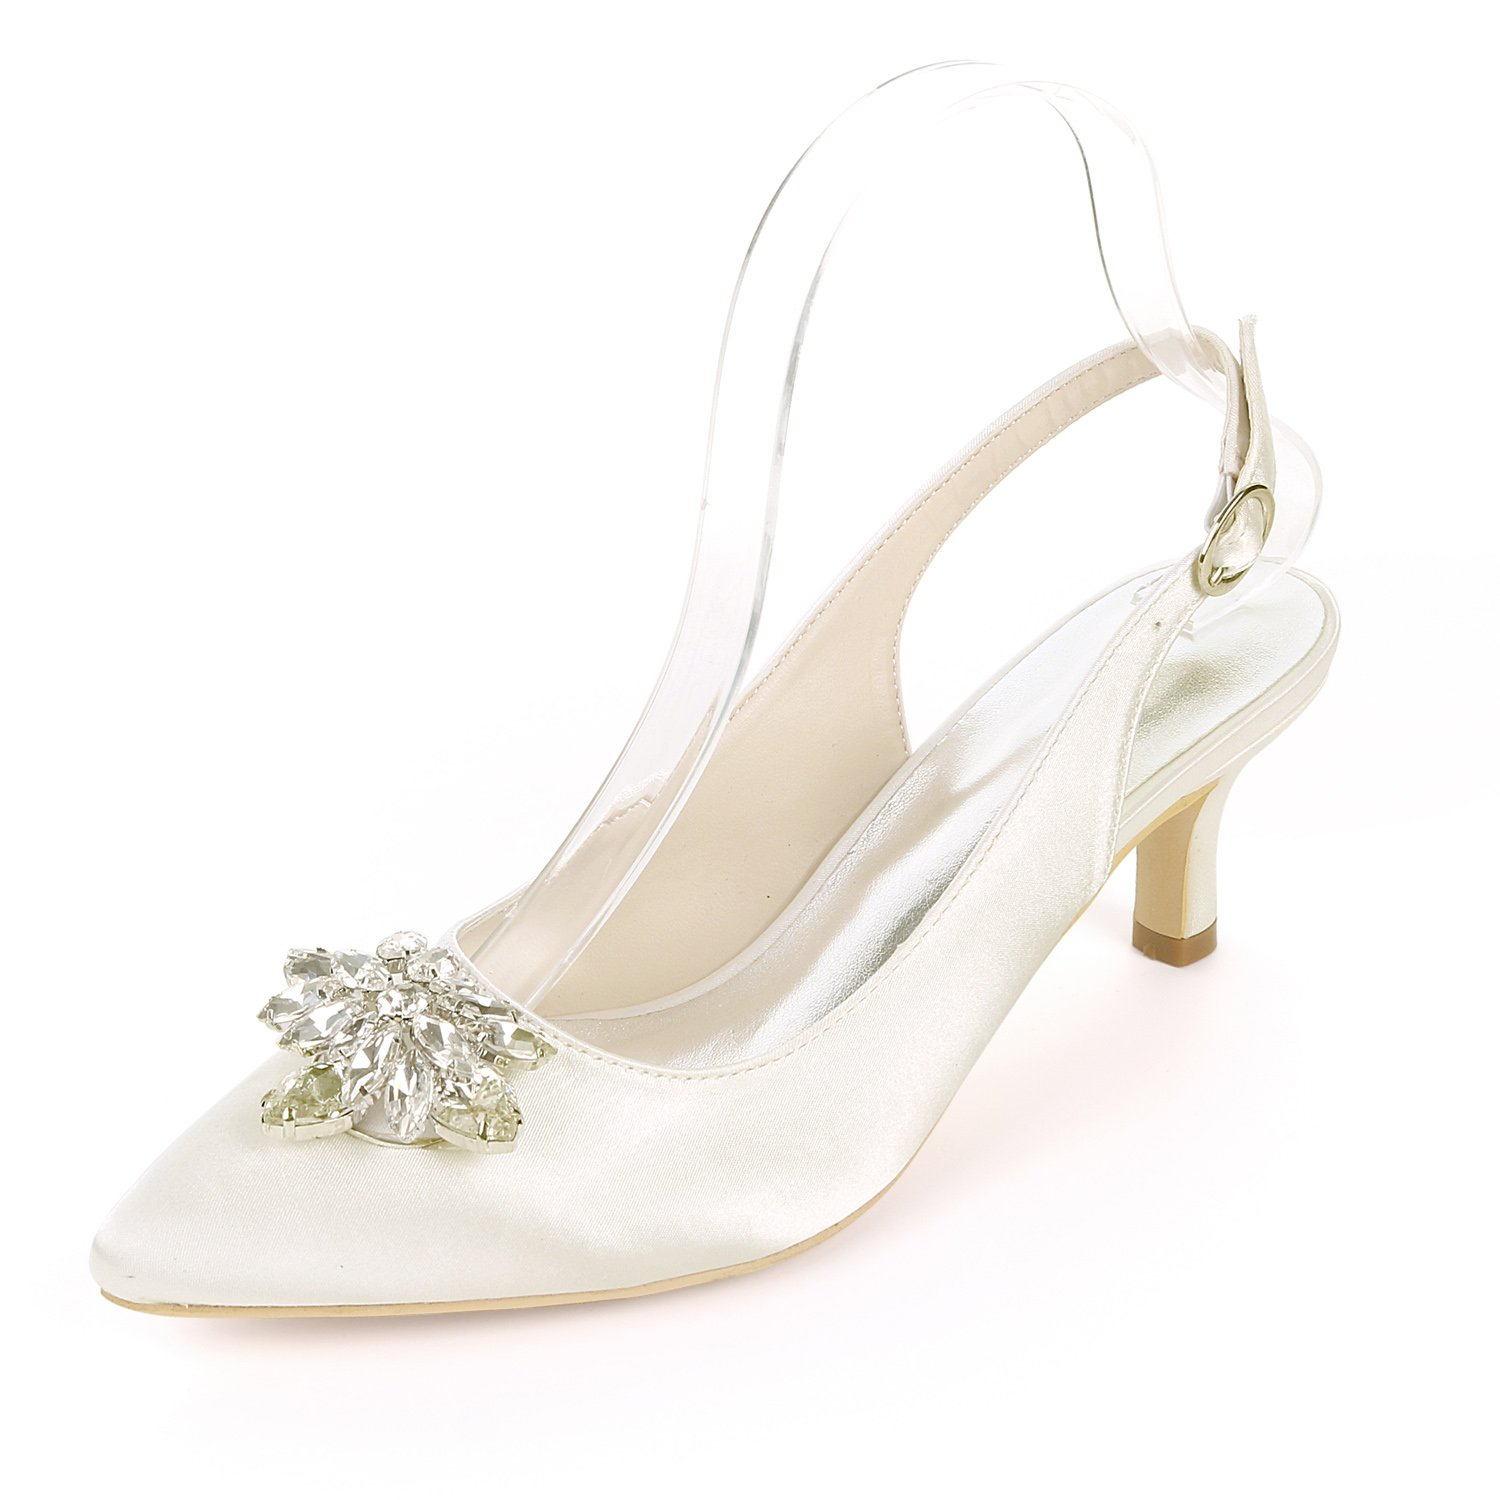 Ivoire Wedding chaussures for for femmes Satin Pointed Buckle Rhinestone crystal High Heels Pumps Summer Kitten Party Vintage Wedding chaussures 6CM  le magasin